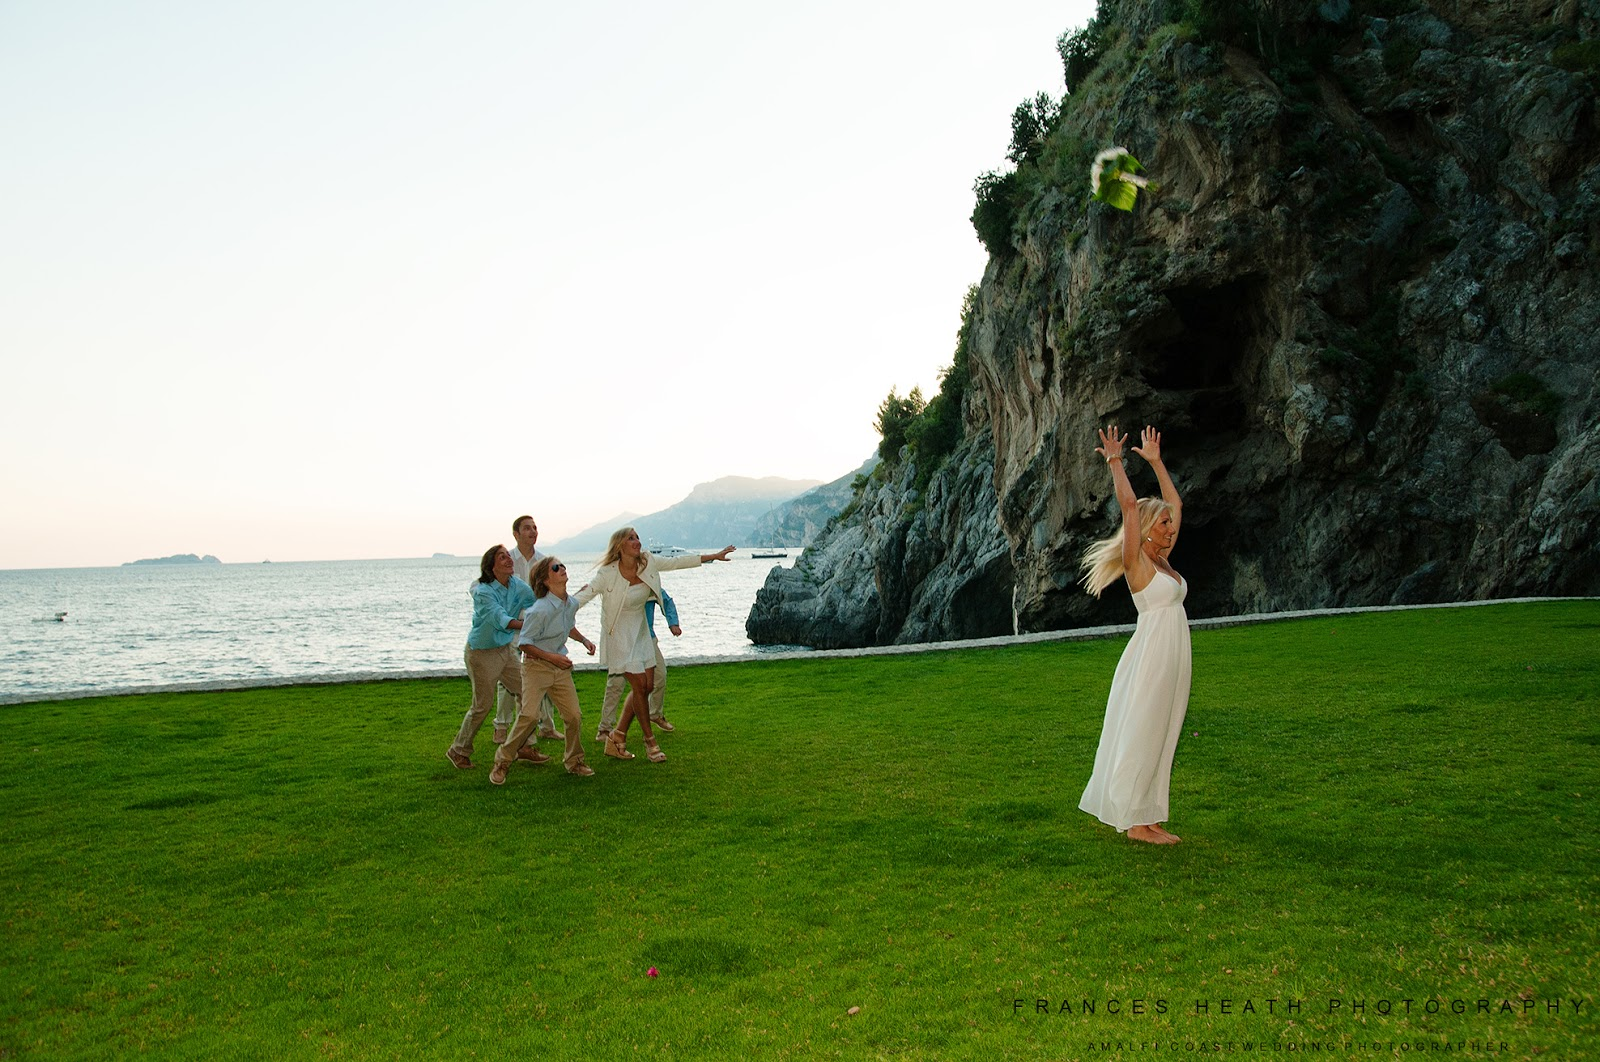 Family portrait throwing the bouquet in Positano